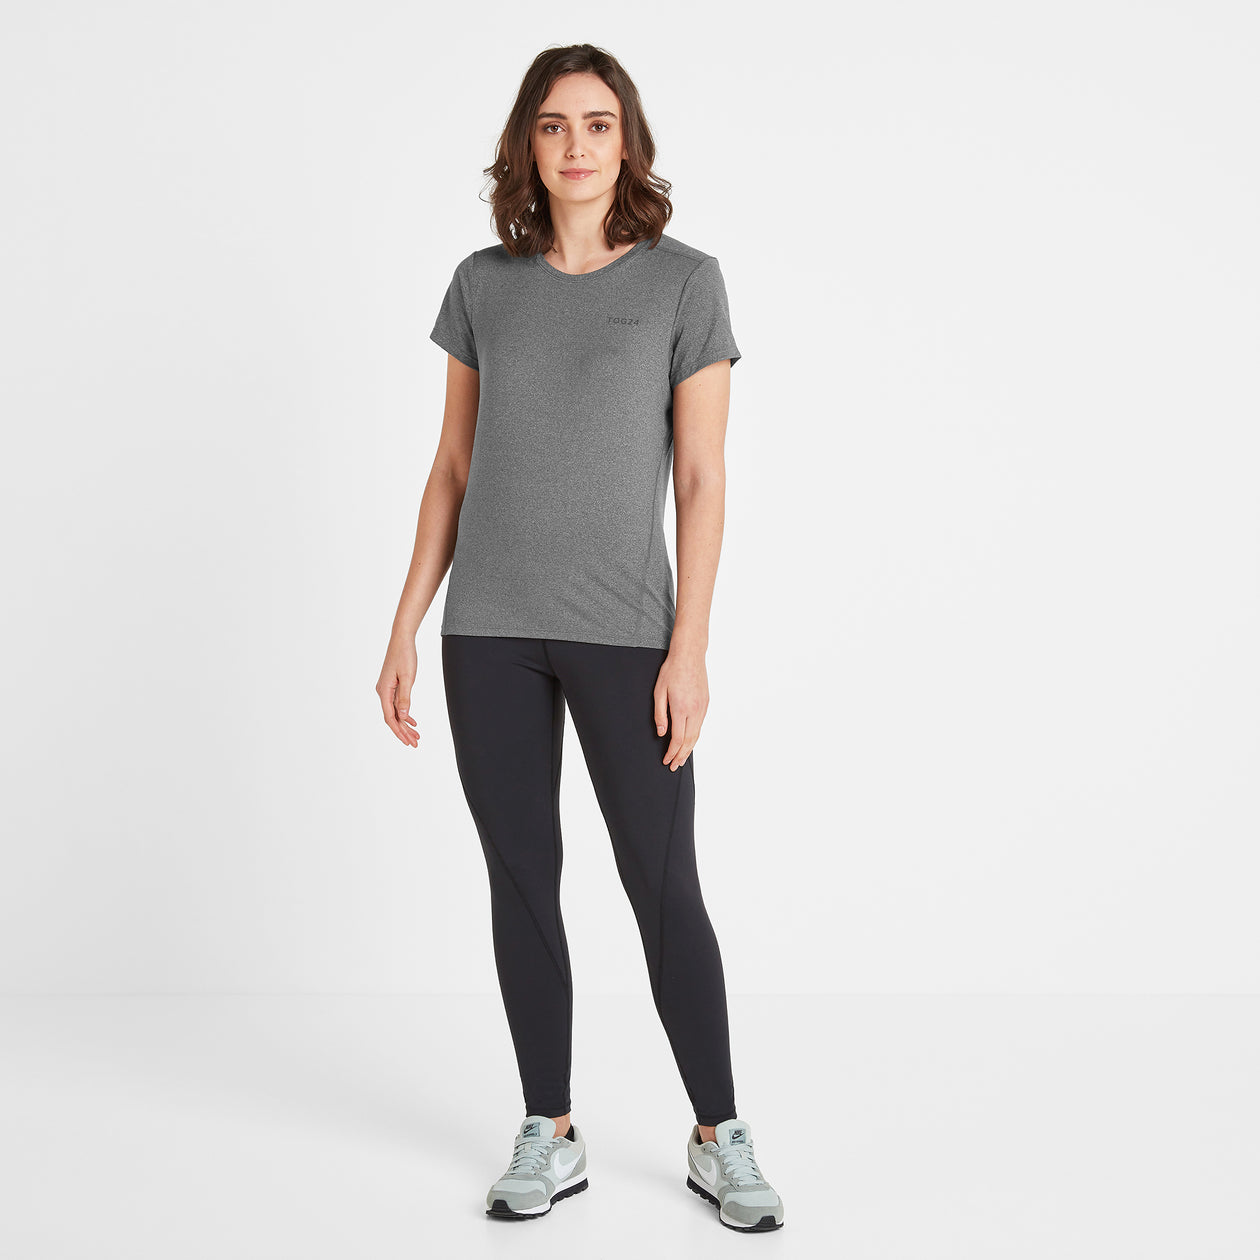 Barton Womens Tech T-Shirt - Dark Grey Marl image 4